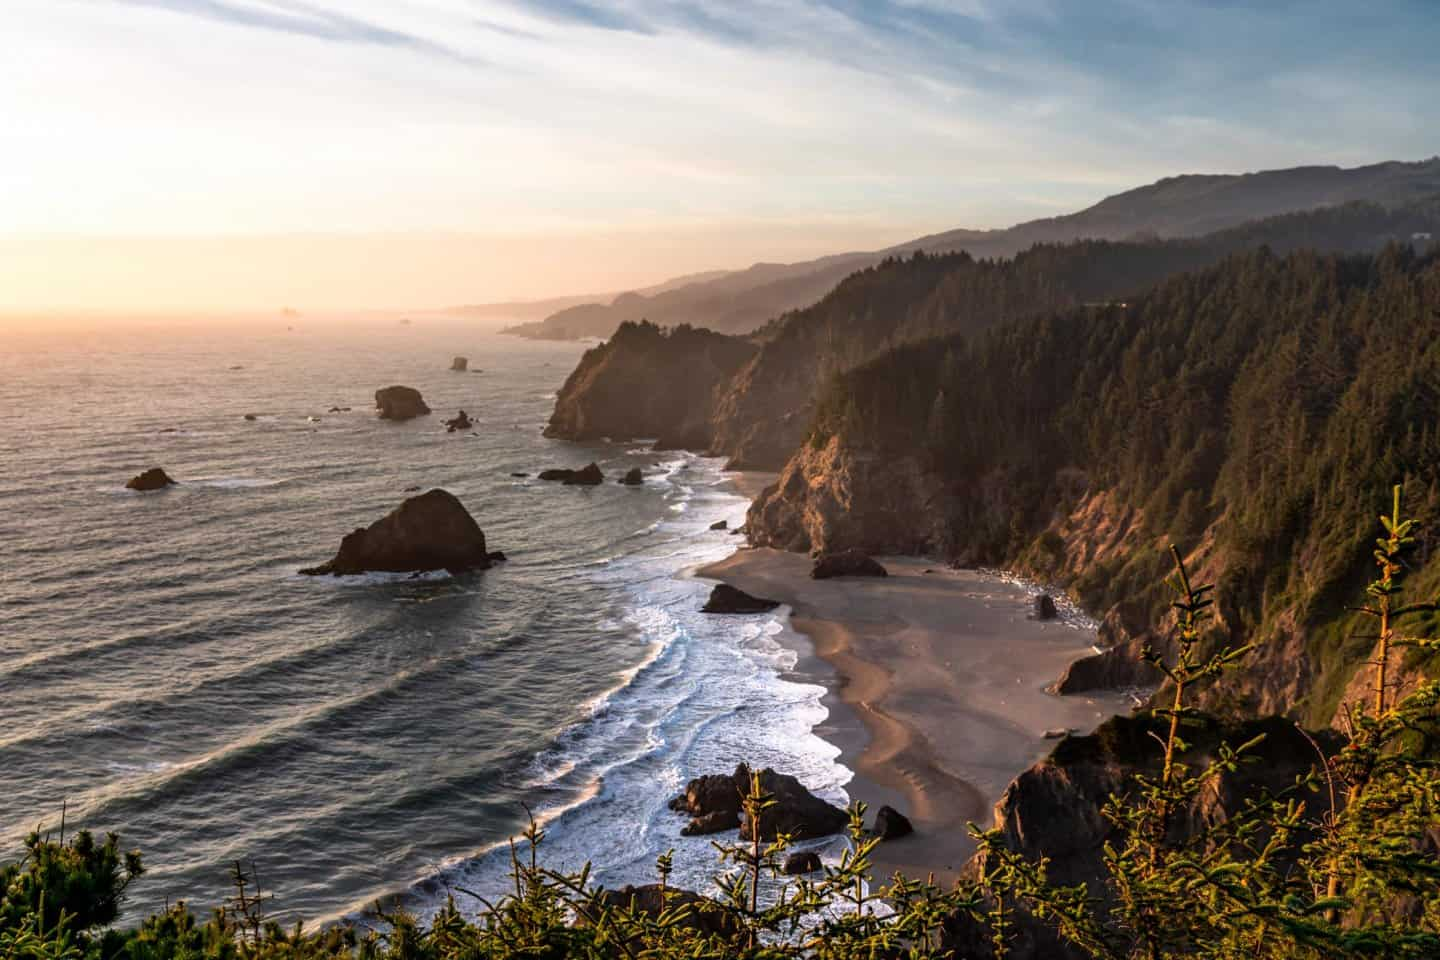 Golden hour photography of Indian Sands on the Oregon Coast.